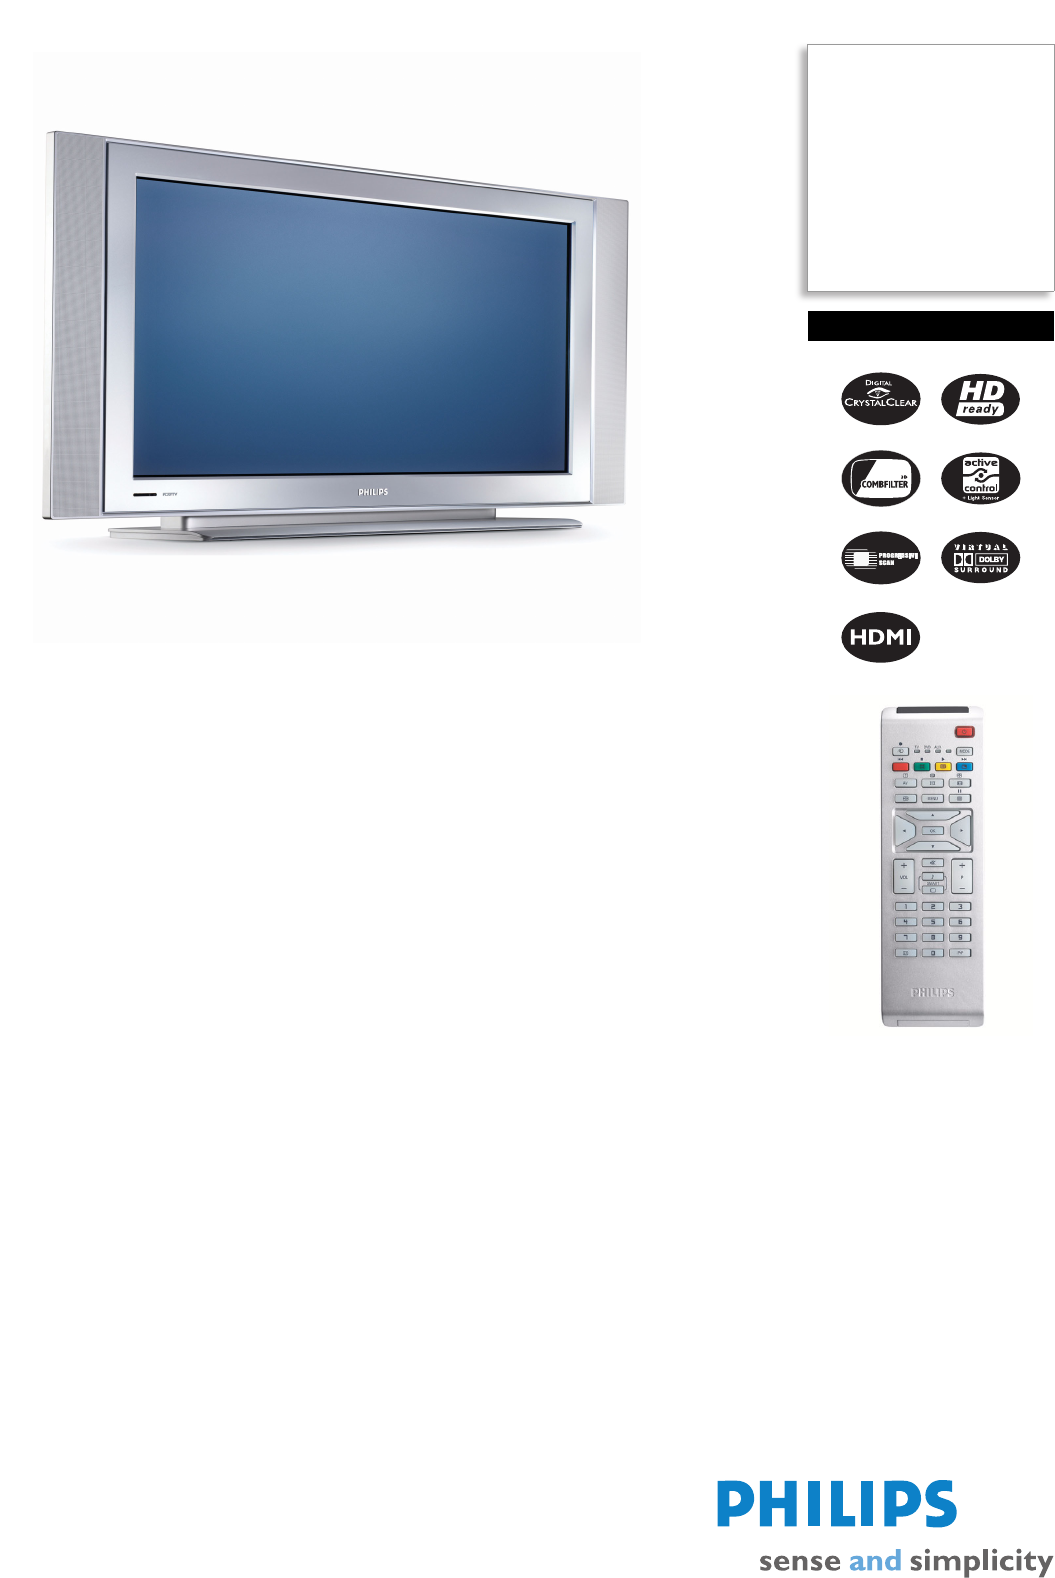 philips flat panel television wxga user guide manualsonline com rh tv manualsonline com philips tv user manual download philips tv user manual download